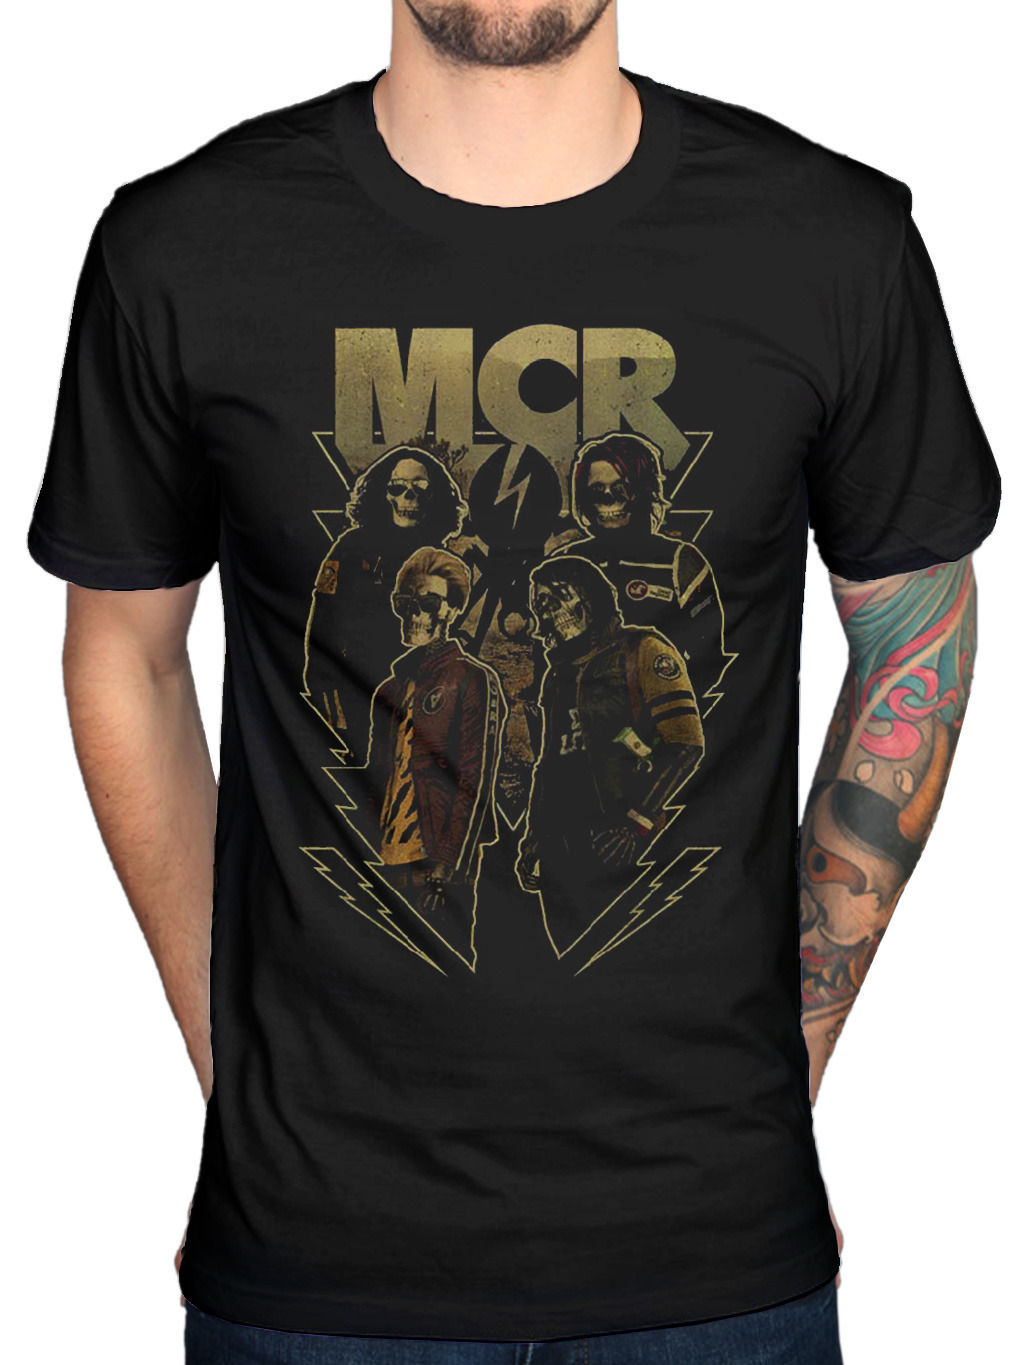 My Chemical Romance Appetite For Danger T Shirt Gerard Way Merchandise Printed 2017 Newest Funny Cool Tops Fashion Tees